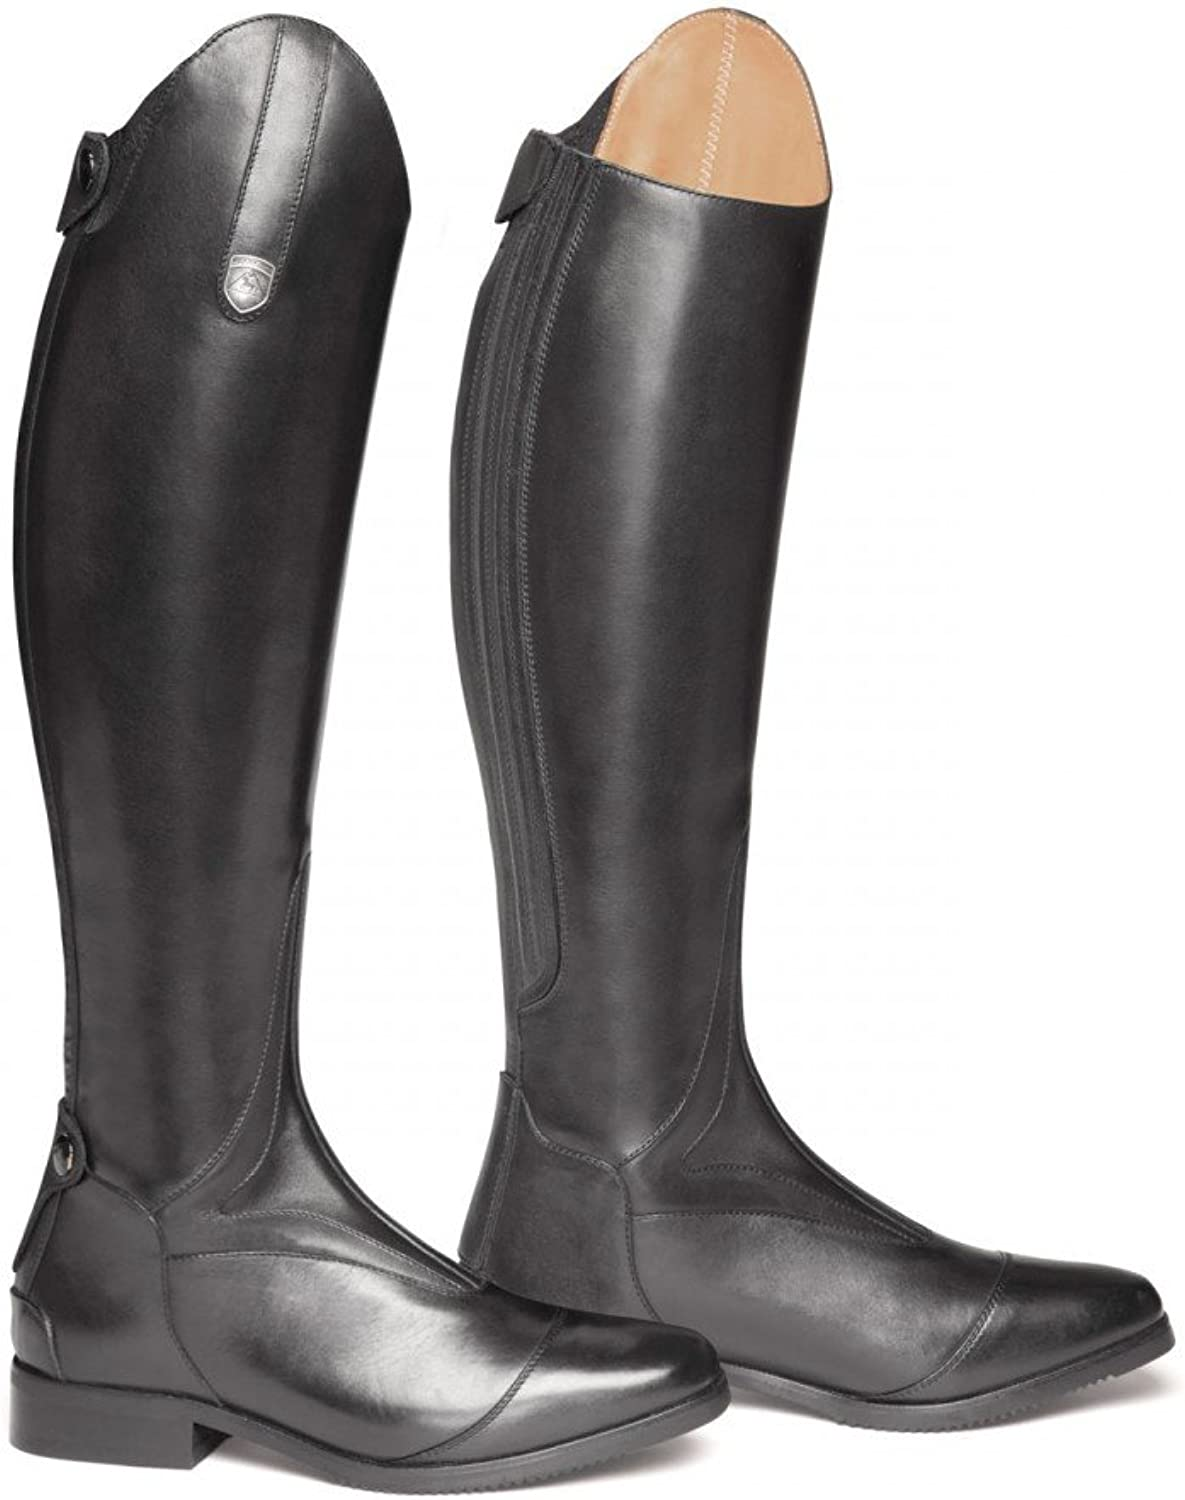 Mountain Horse Opus High Rider Rider Rider Long Boots Select Storlek and Colour   försäljning online spara 70%